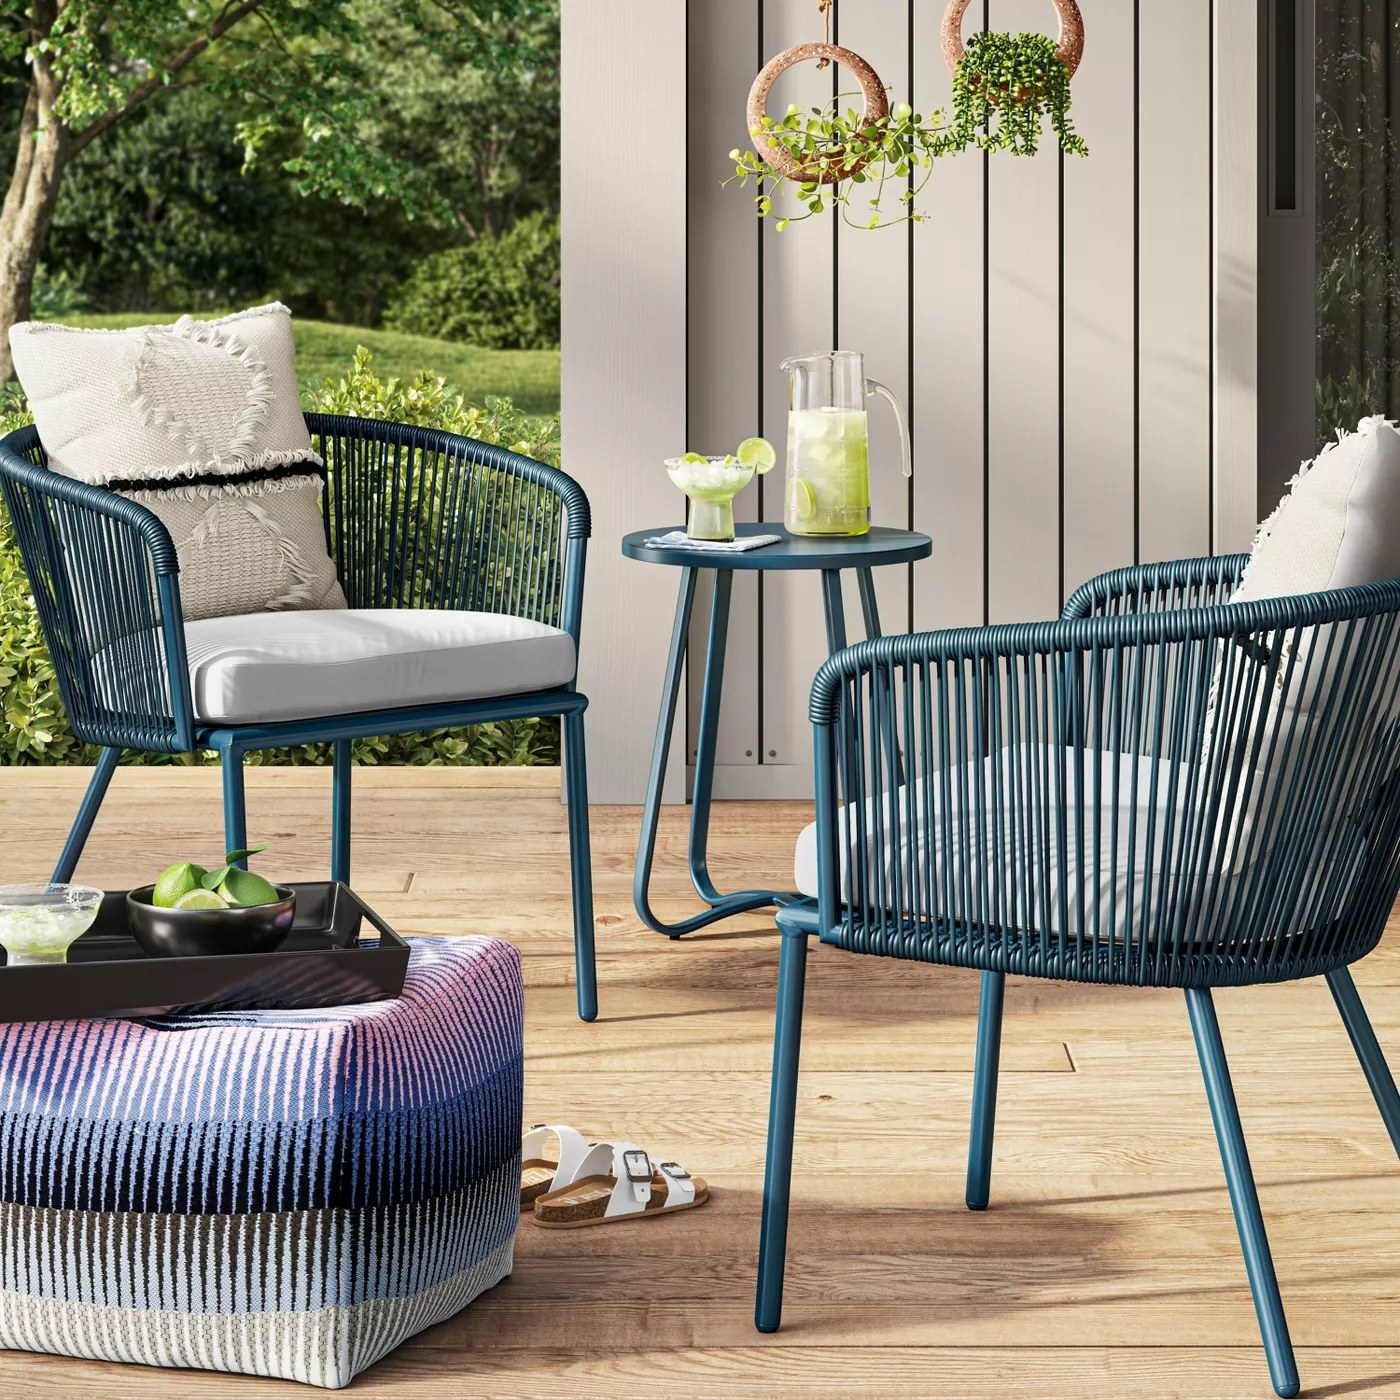 A blue patio set with two chairs and a matching table on a deck